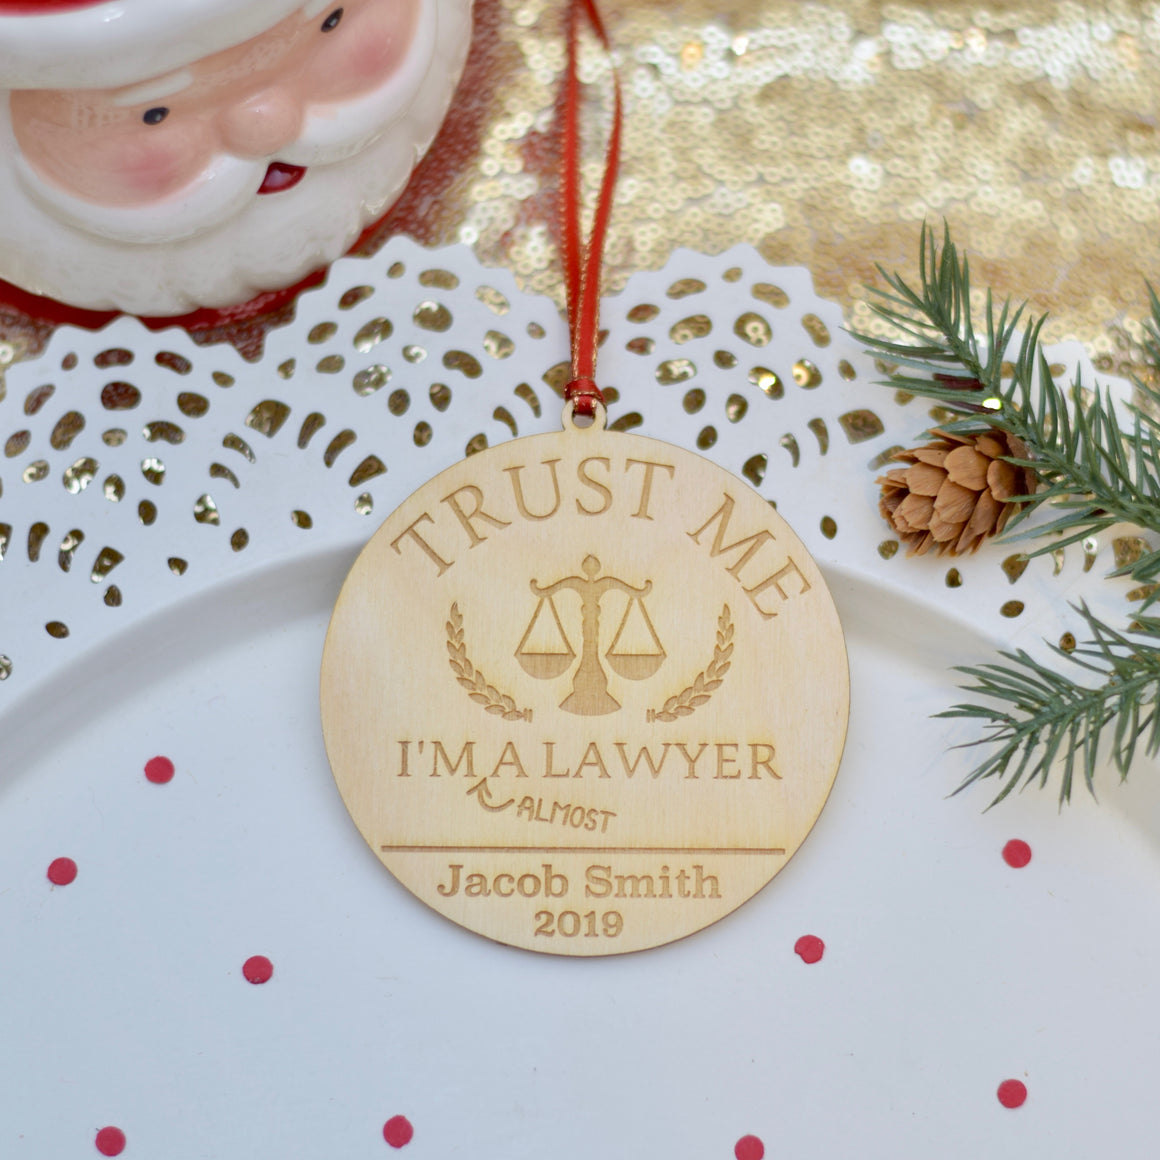 Trust Me I'm a lawyer and scales of justice ornament